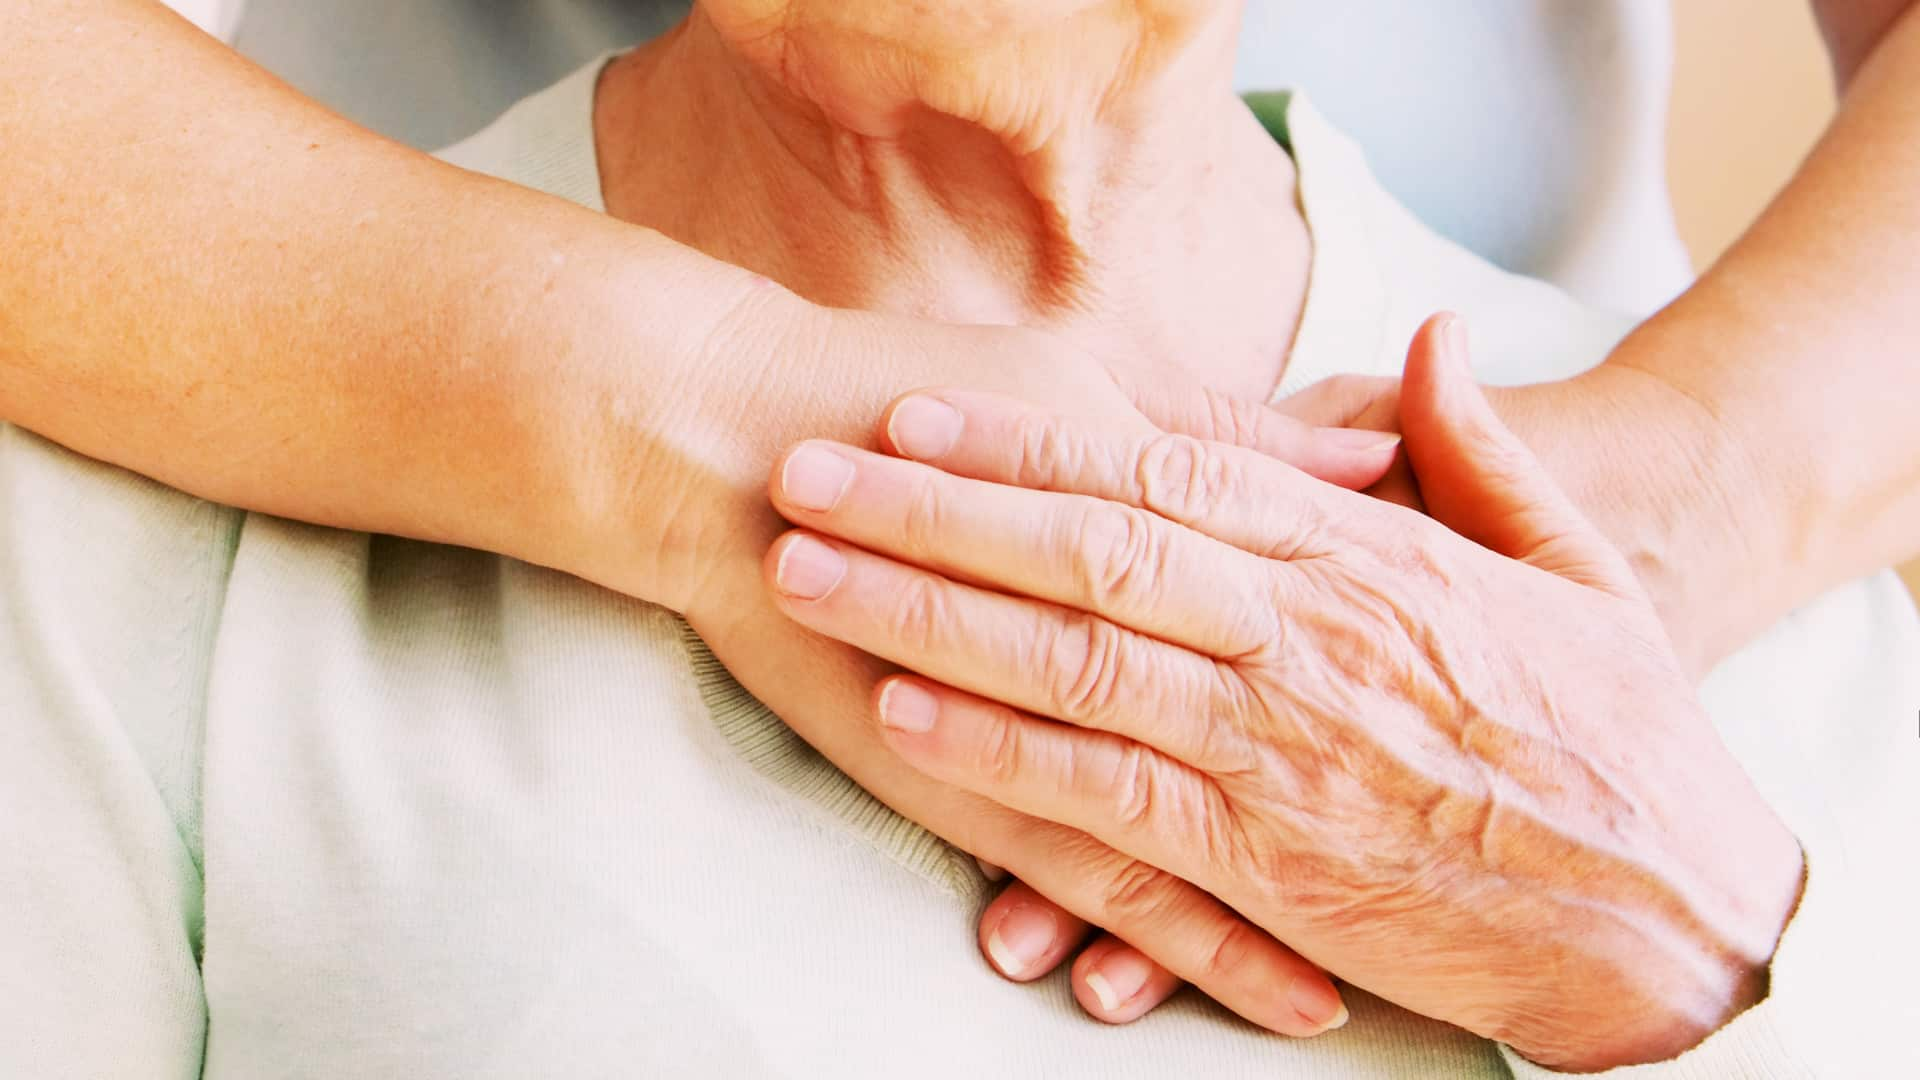 Home Health Care: 15 Good Reasons Why You Should Choose This Care